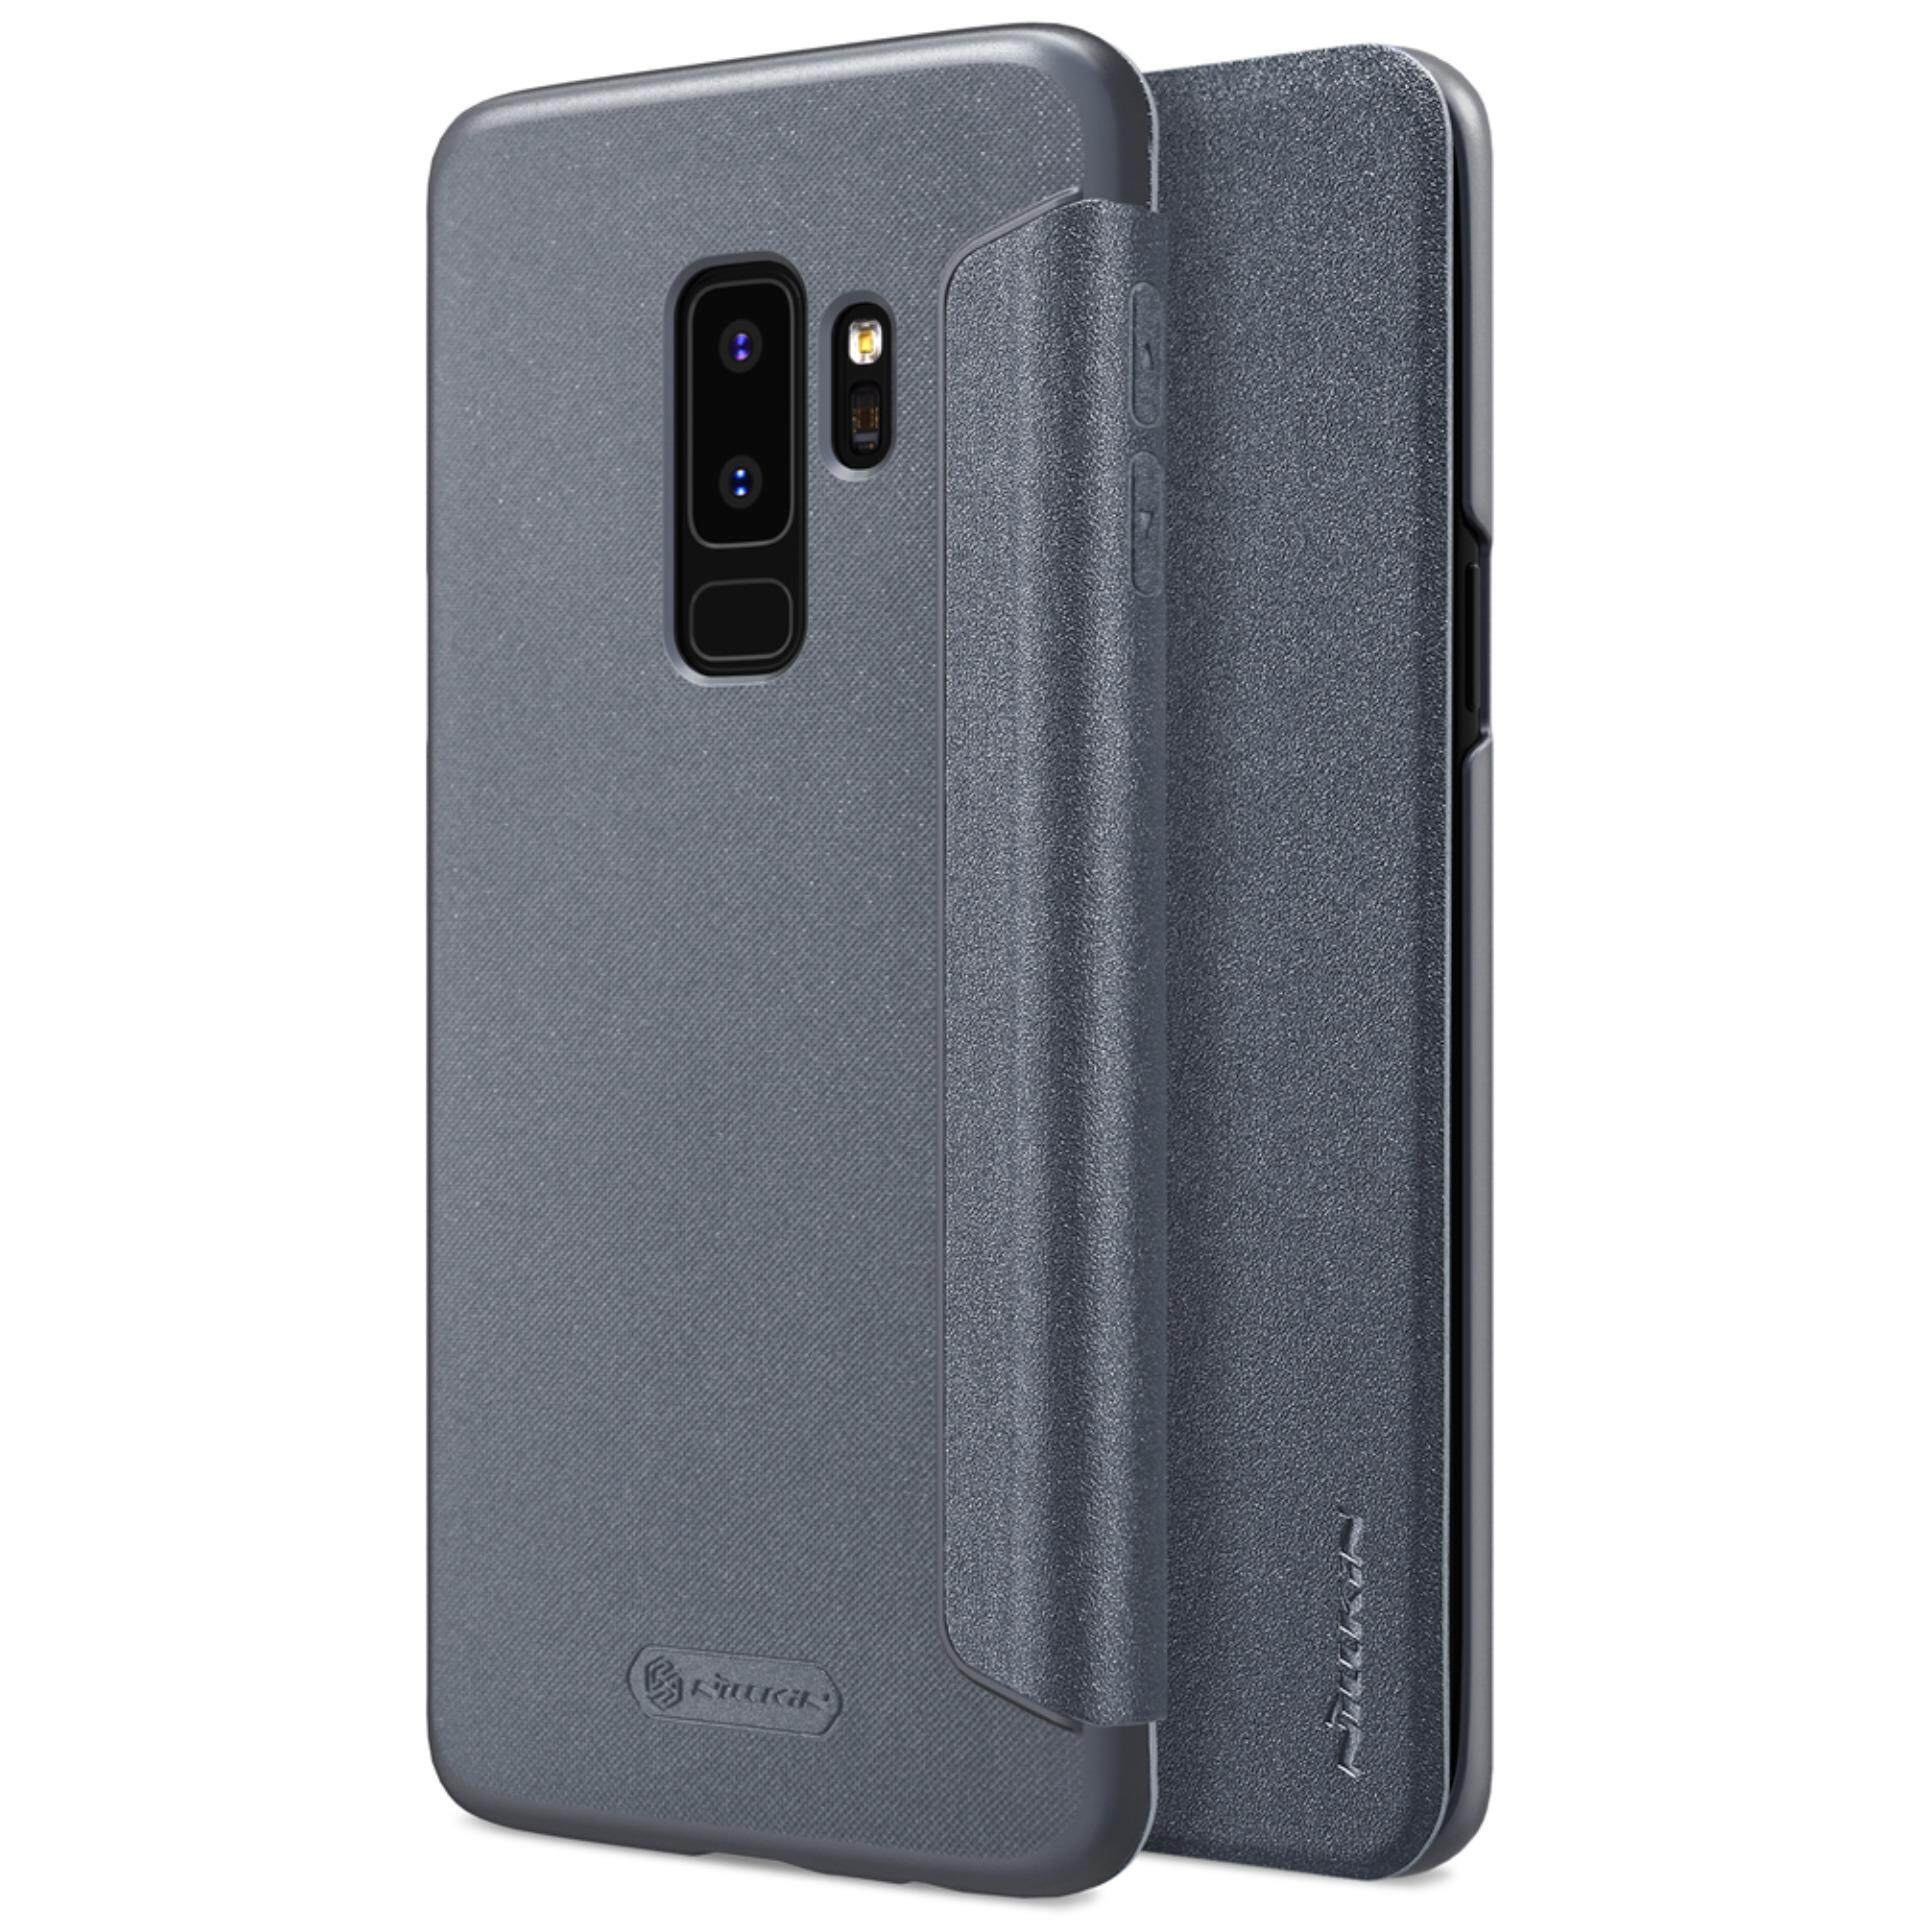 Price Samsung Galaxy S9 Plus S9 Case Nillkin Sparkle Book Type Ultra Thin Flip Up Pu Leather Slim Cover Case For Samsung Galaxy S9 Plus S9 Grey Intl Nillkin China